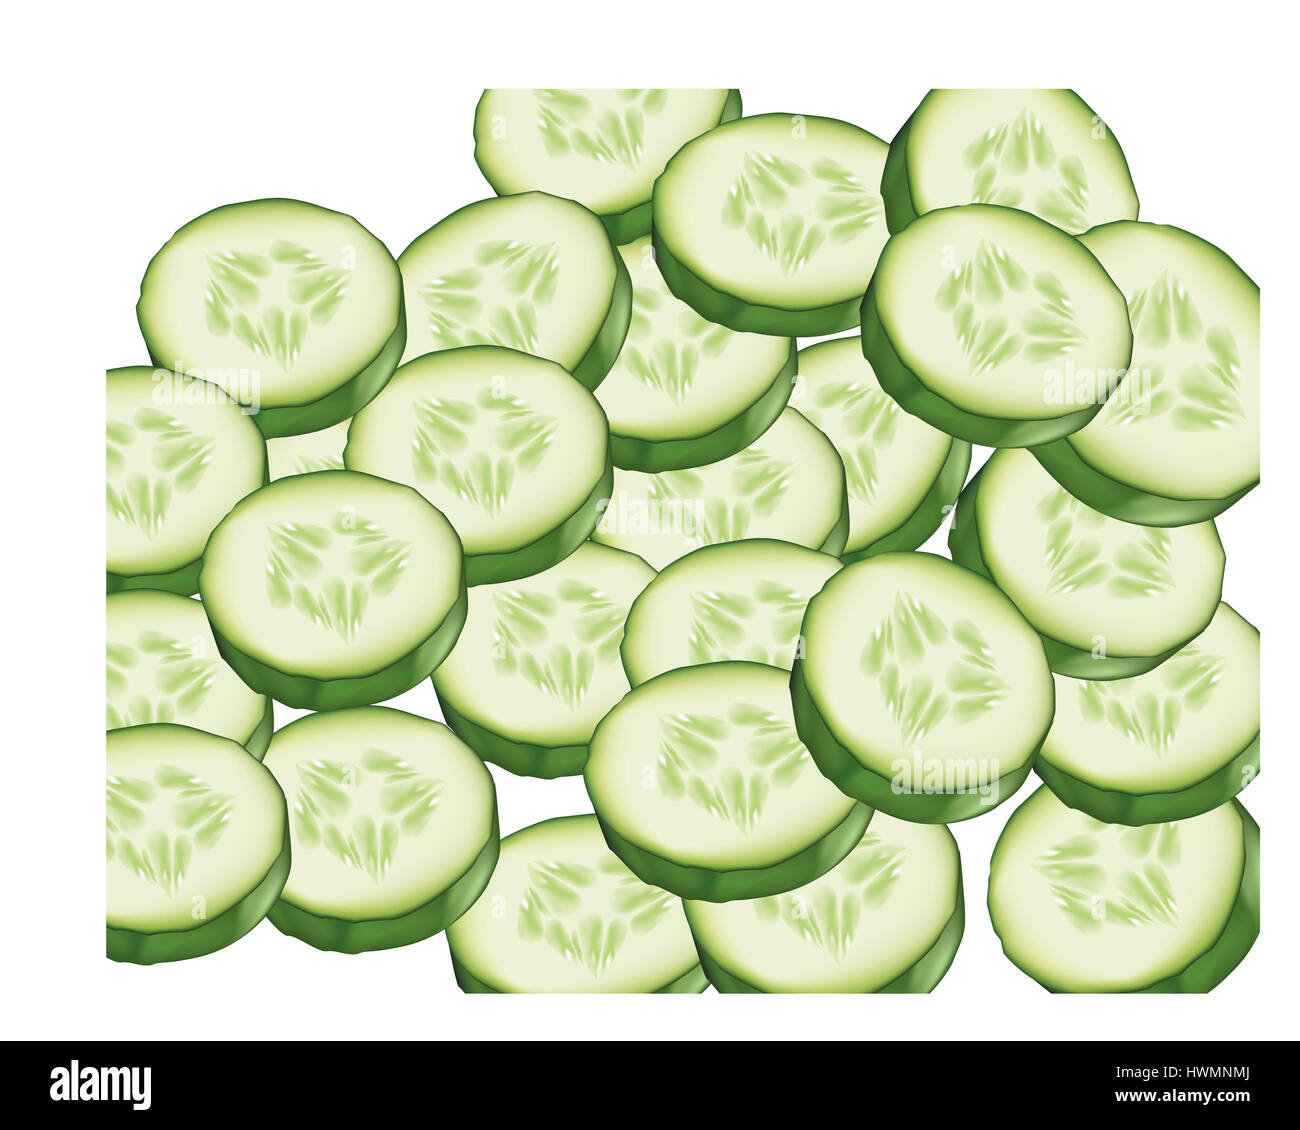 Slices of cucumbers on white background - Stock Image